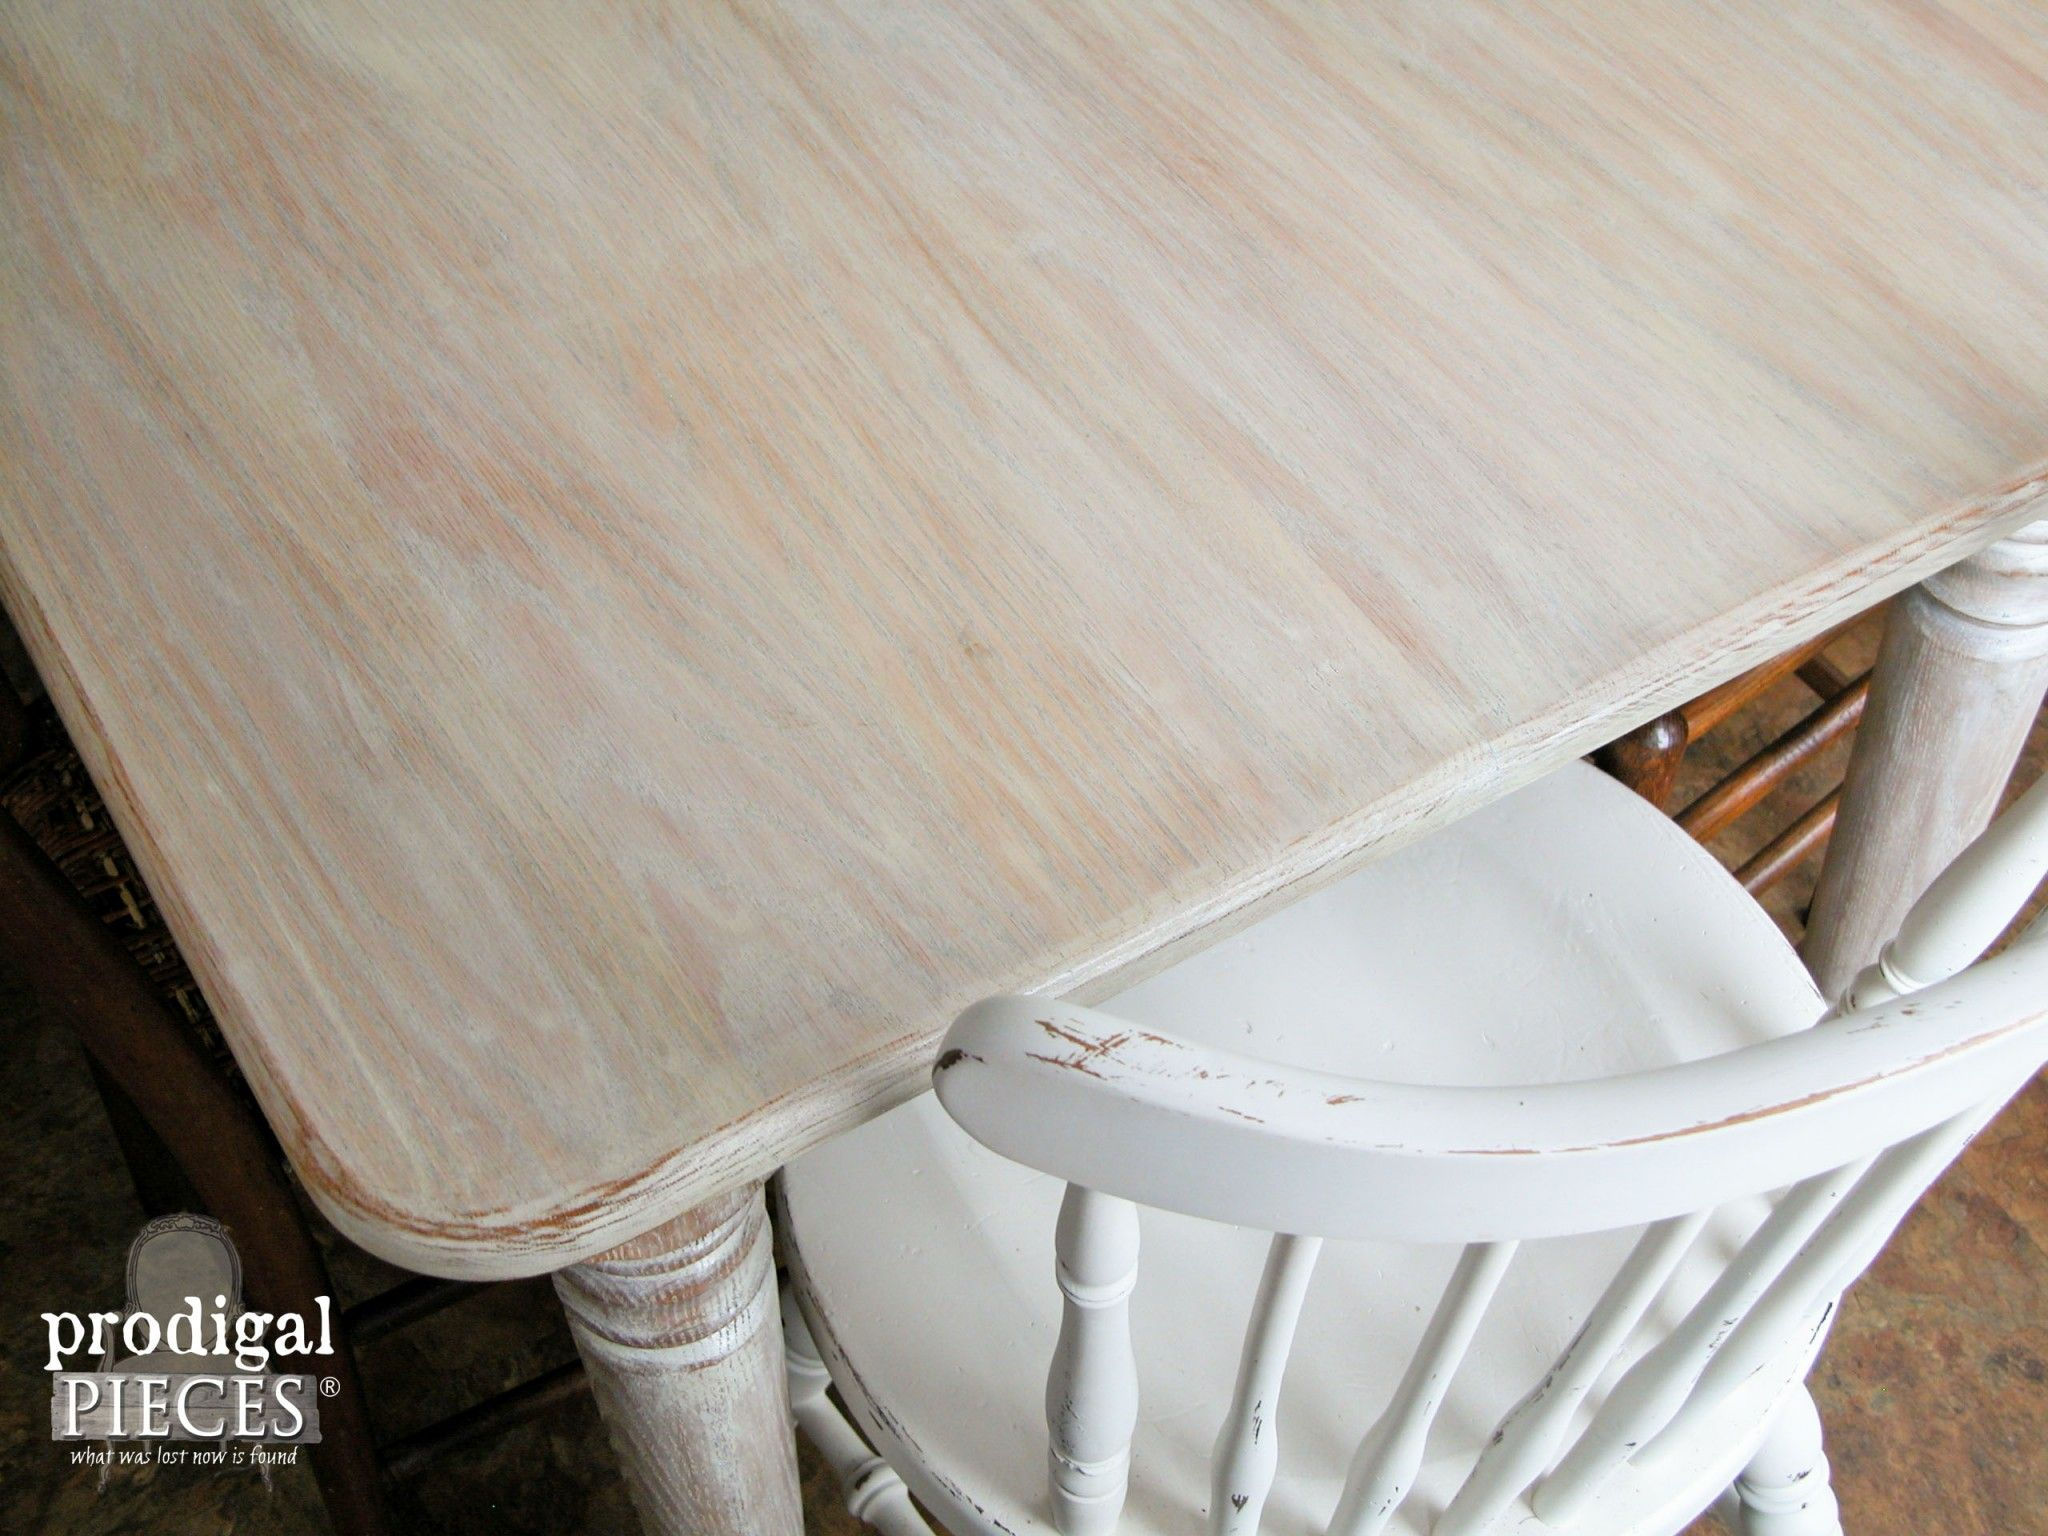 Limewashed Whitewashed Farmhouse Table Top By Prodigal Pieces Www Prodigalpieces Com White Wood Table Diy Table Top Table Makeover